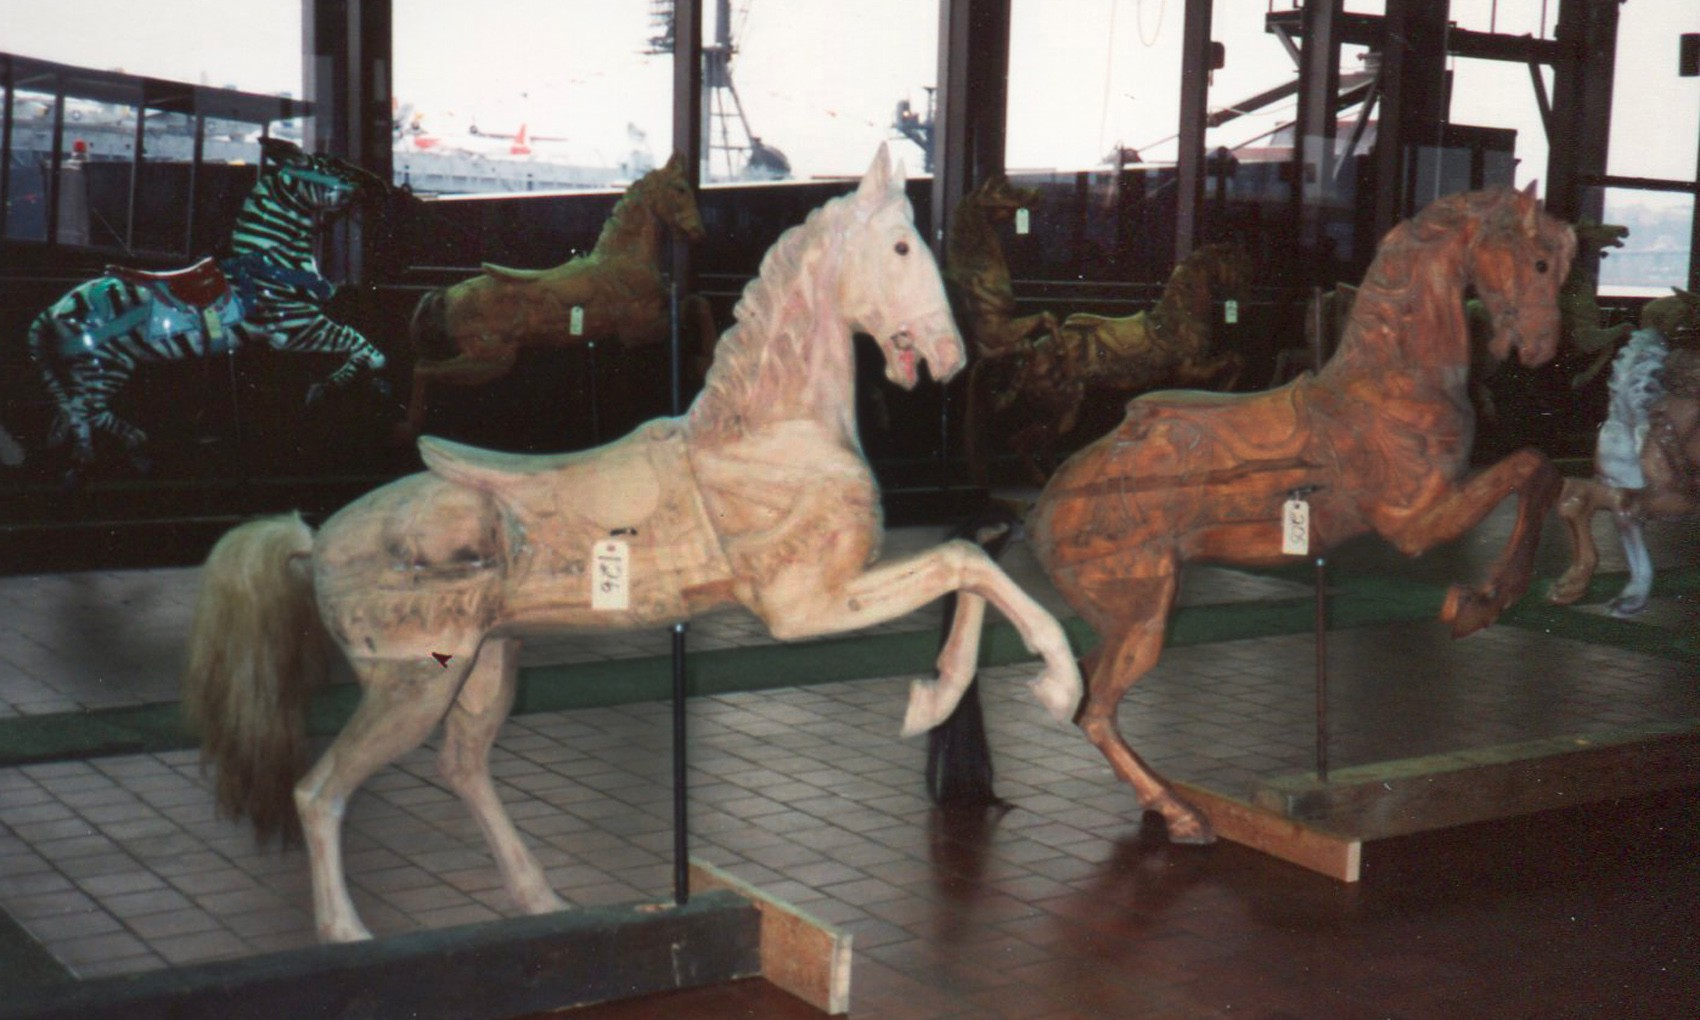 Dentzel-carousel-horses--from-Great-Escape-Fun-Park-NYC-auction-1989